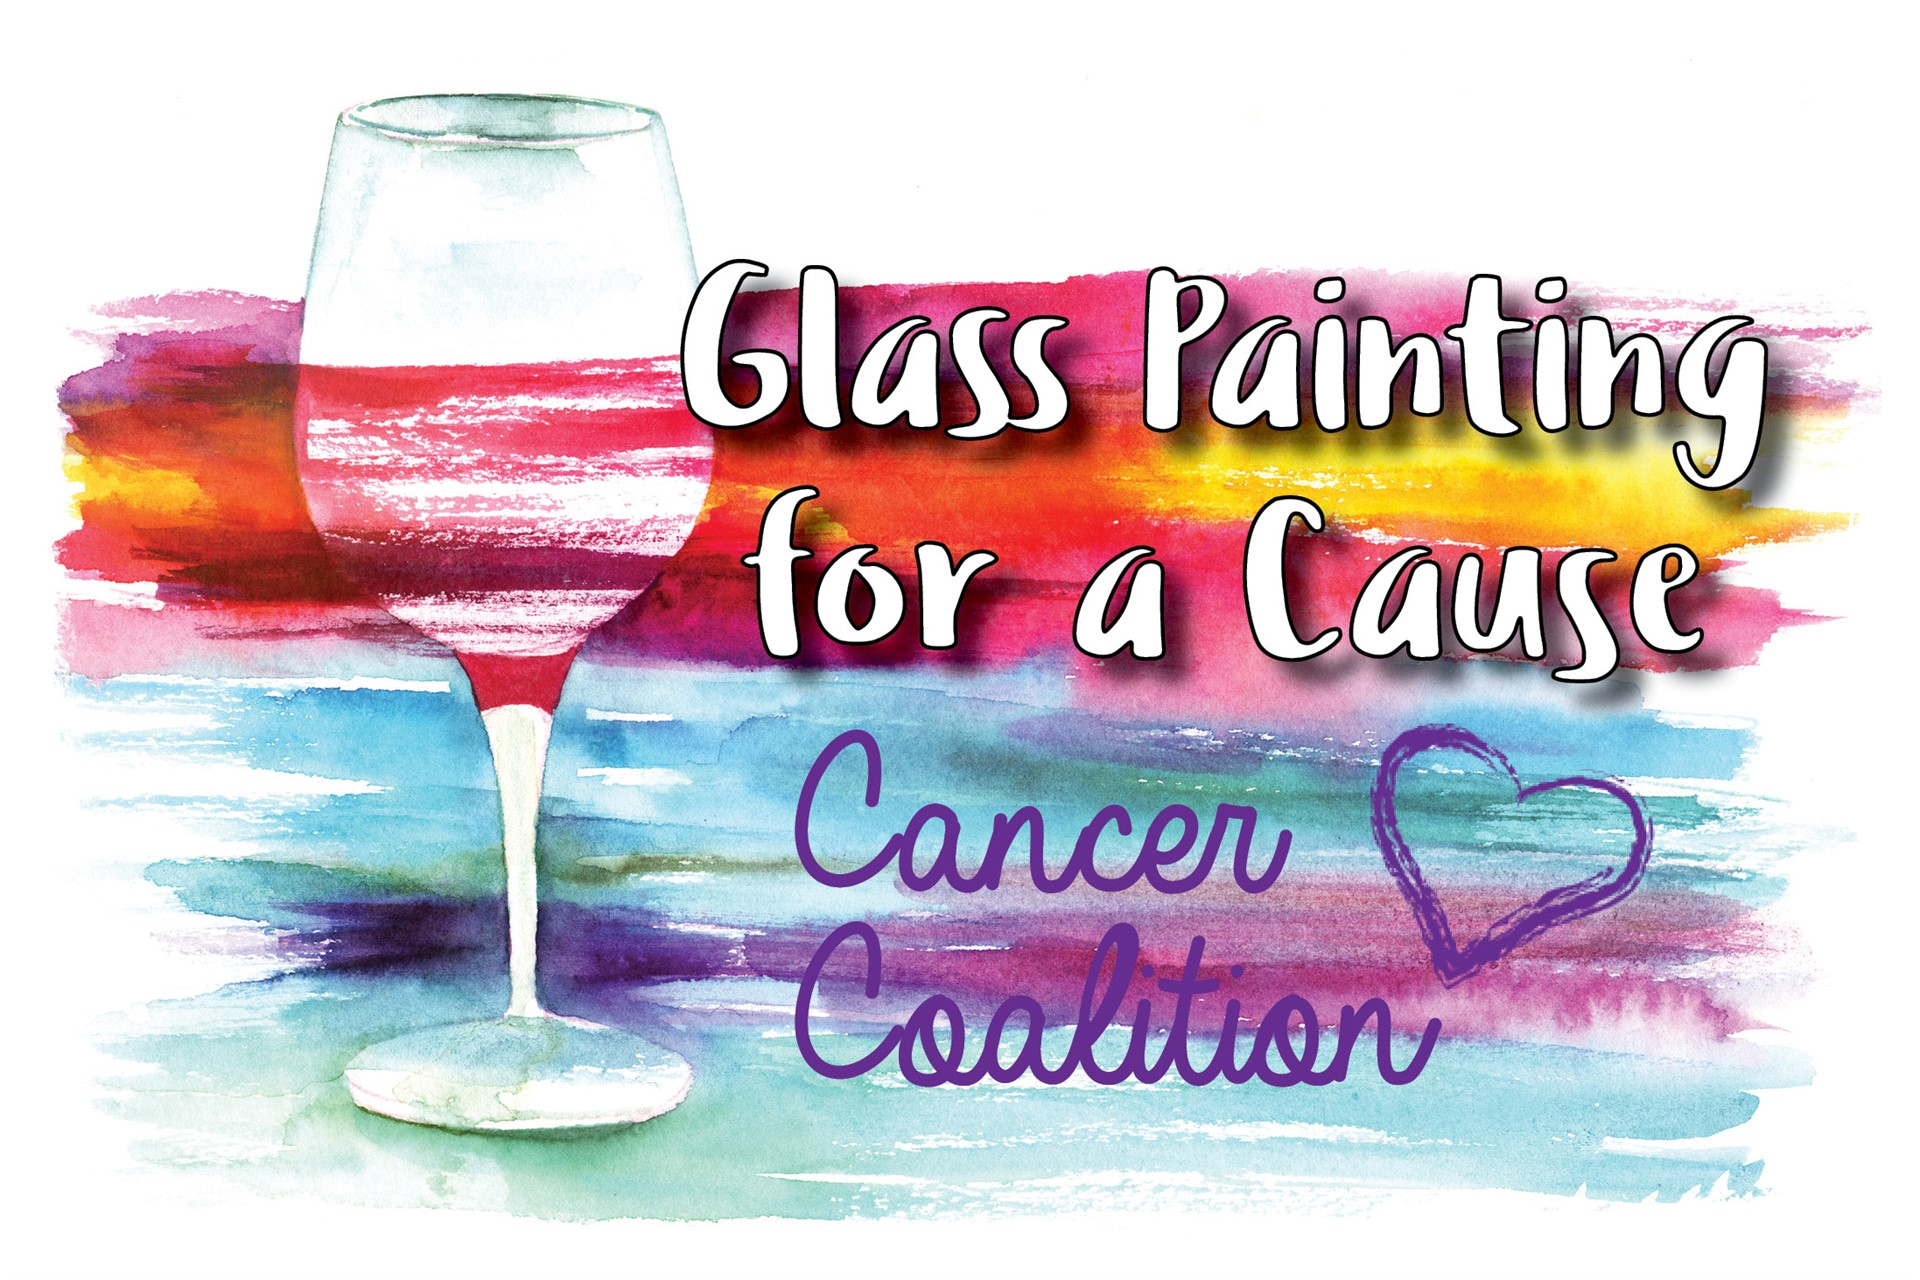 Glass Painting for a Cause